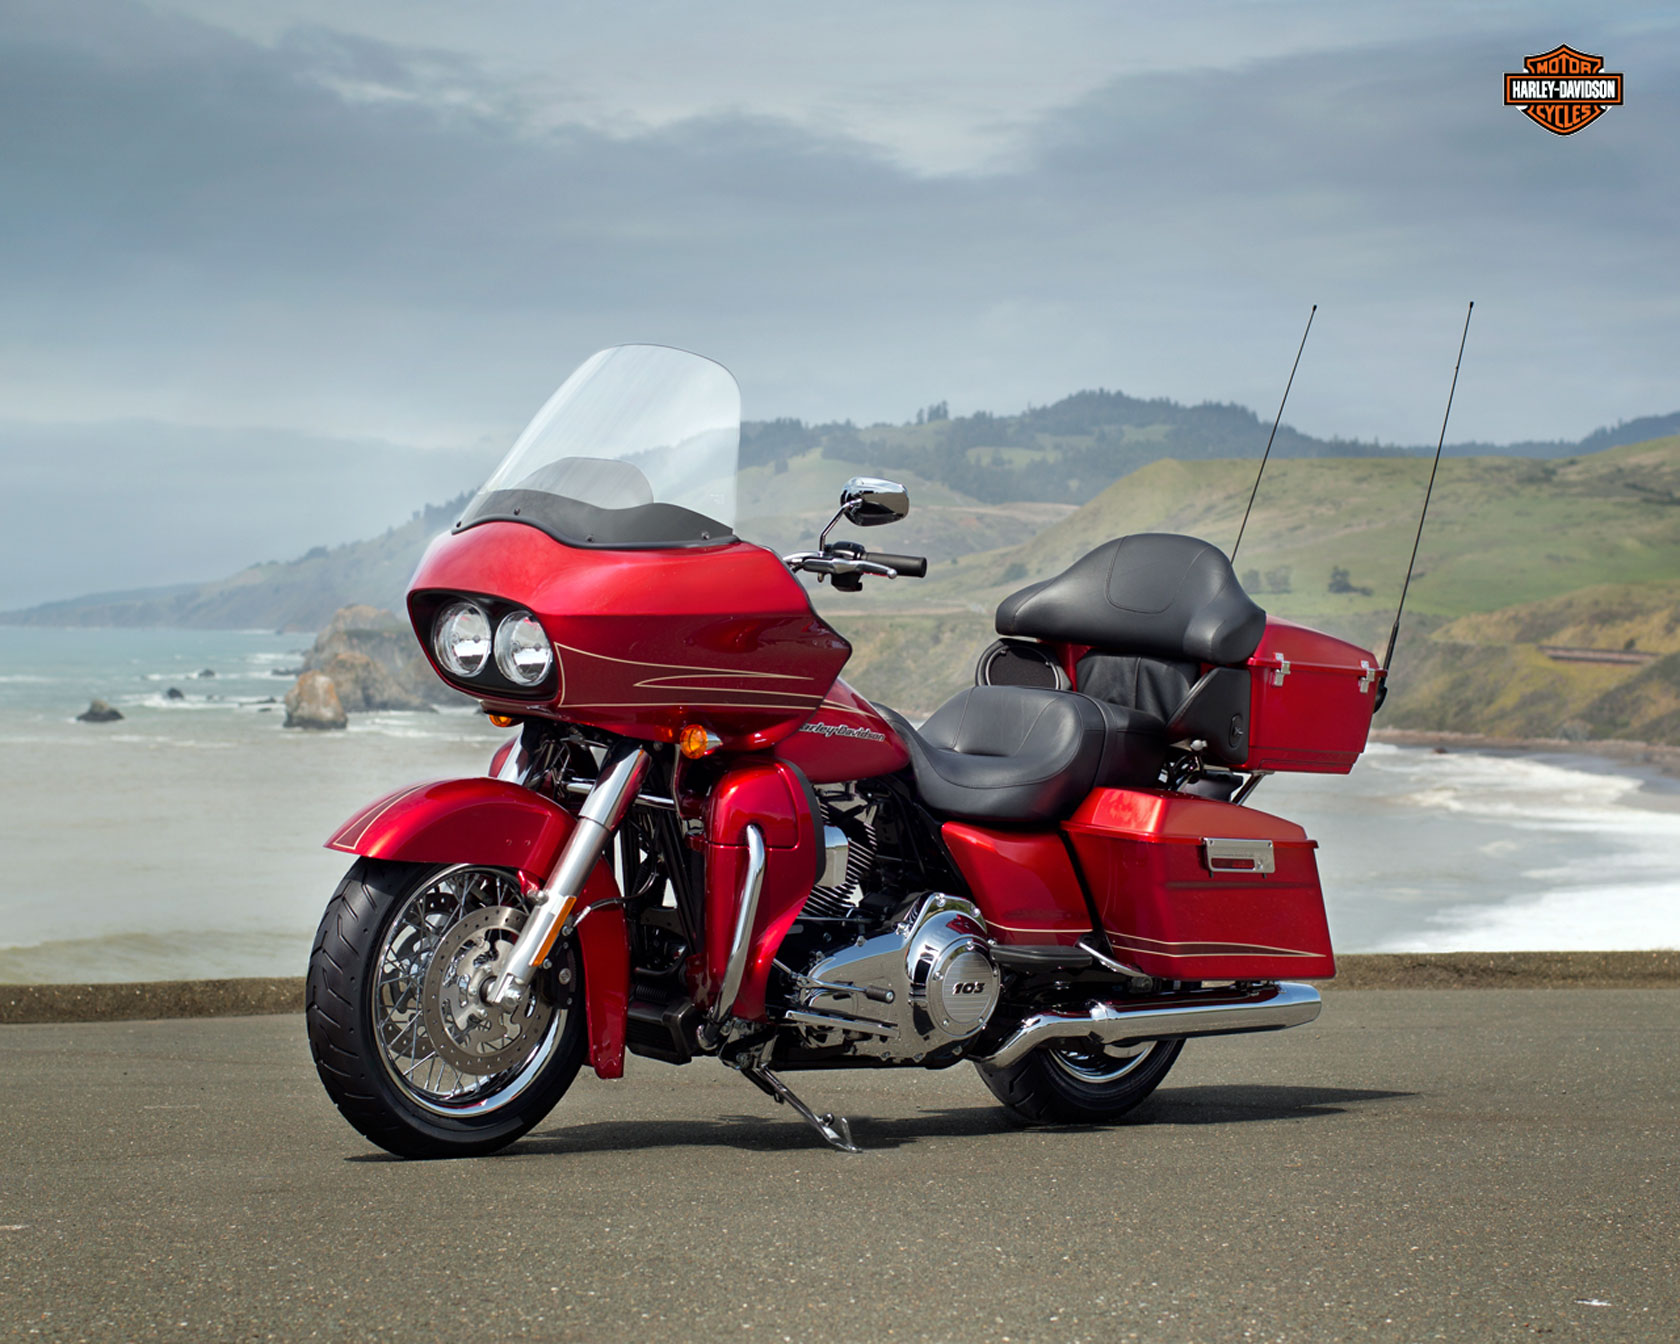 2012 Fltru Harley Davidson Wiring Diagram Reinvent Your 2014 Ultra Limited Road Glide Pics Specs And Rh Onlymotorbikes Com Ford 1982 Sportster